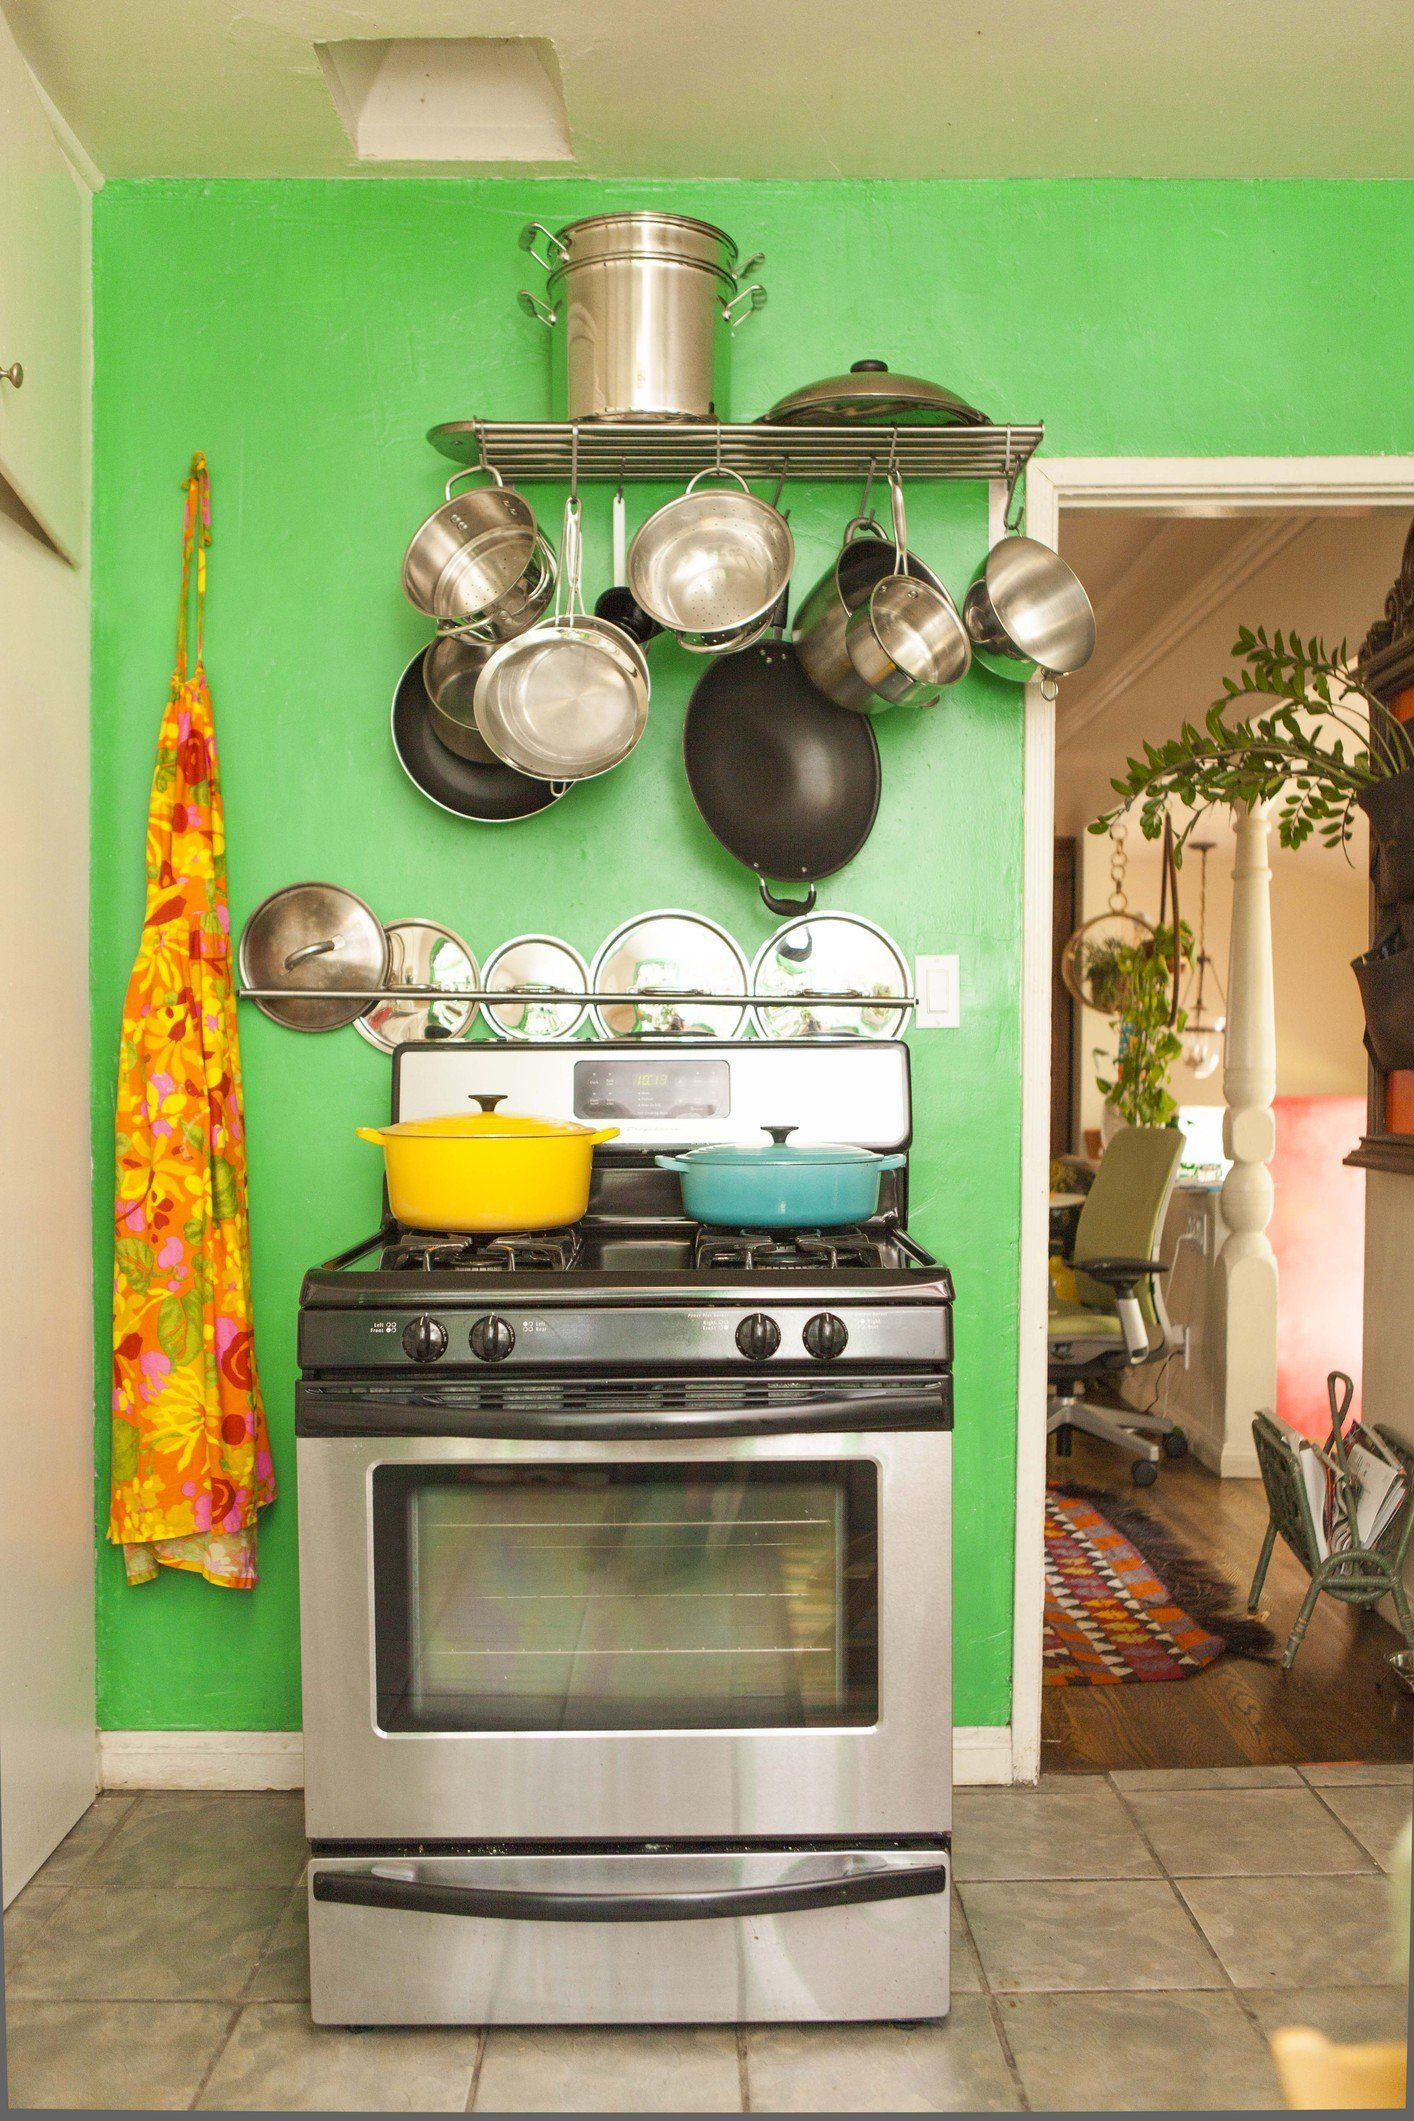 5 Important Things To Know About Baking In A Gas Oven Command Center Kitchen Kitchen Inspirations Gas Oven